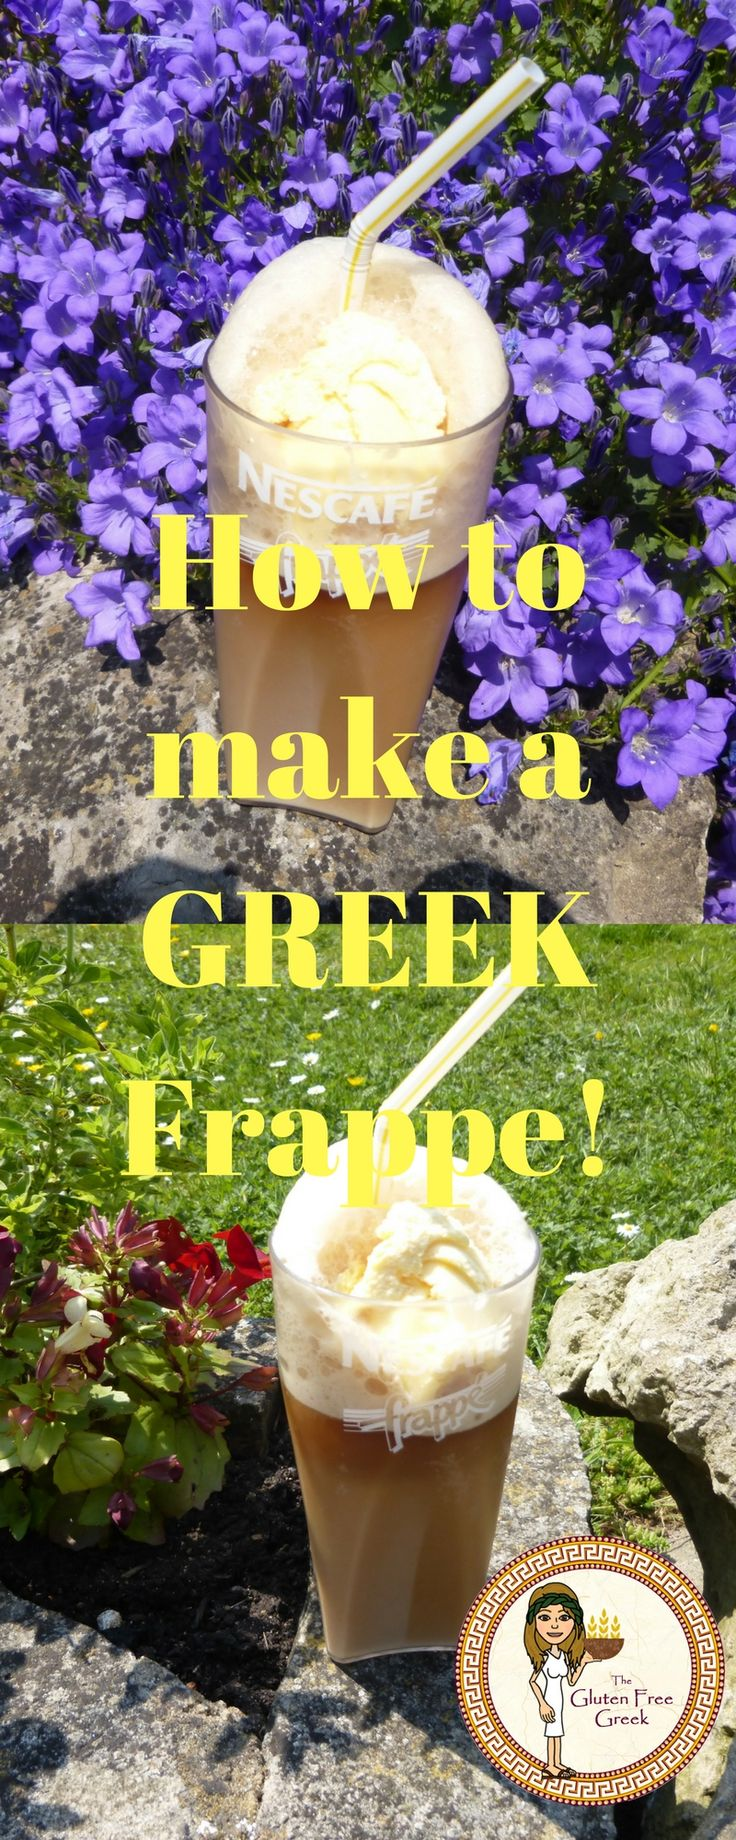 How to make a Greek frappe! Check out my blog for easy instructions!